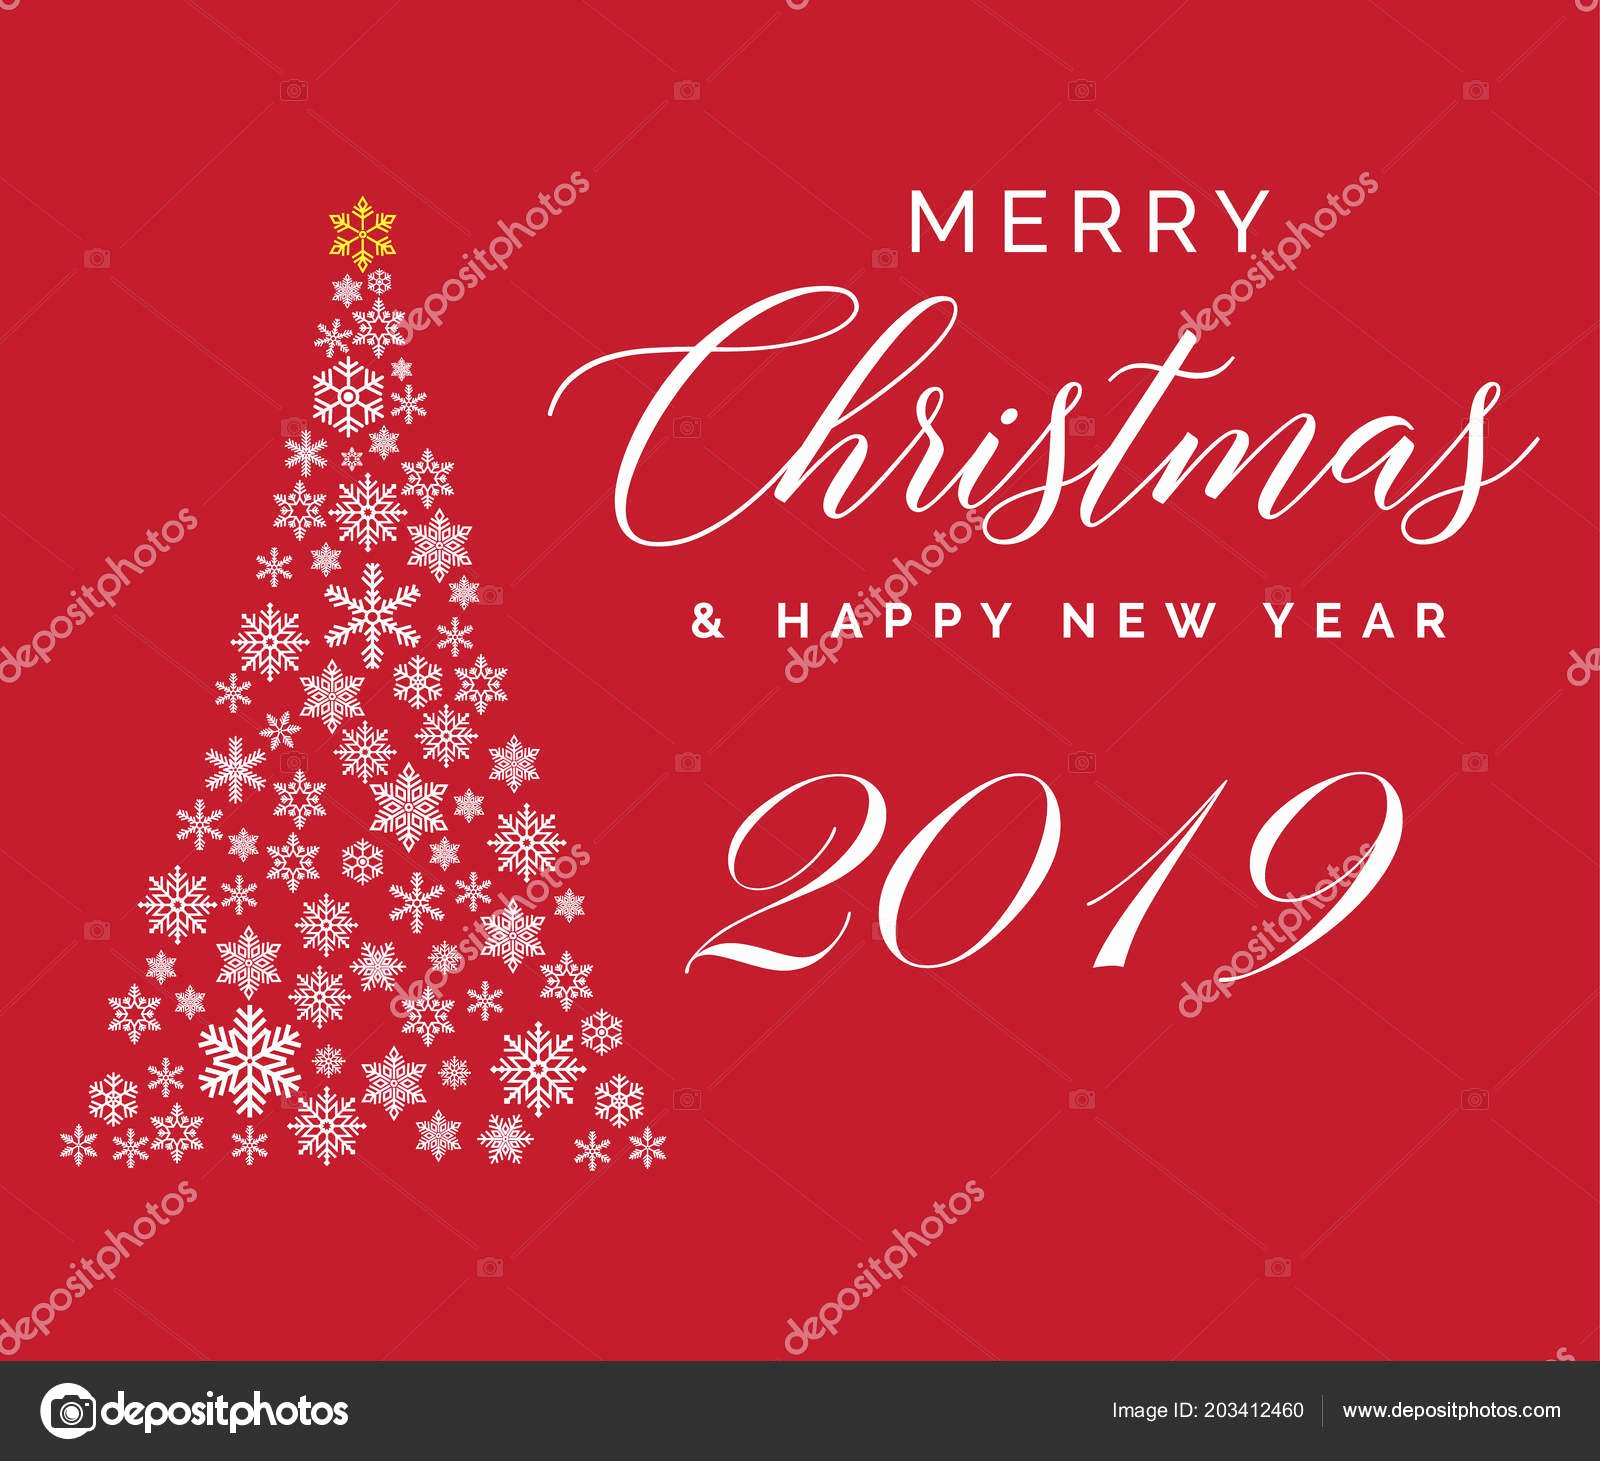 Happy New Year Email Template Luxury Merry Christmas and Happy New Year Email with 2019